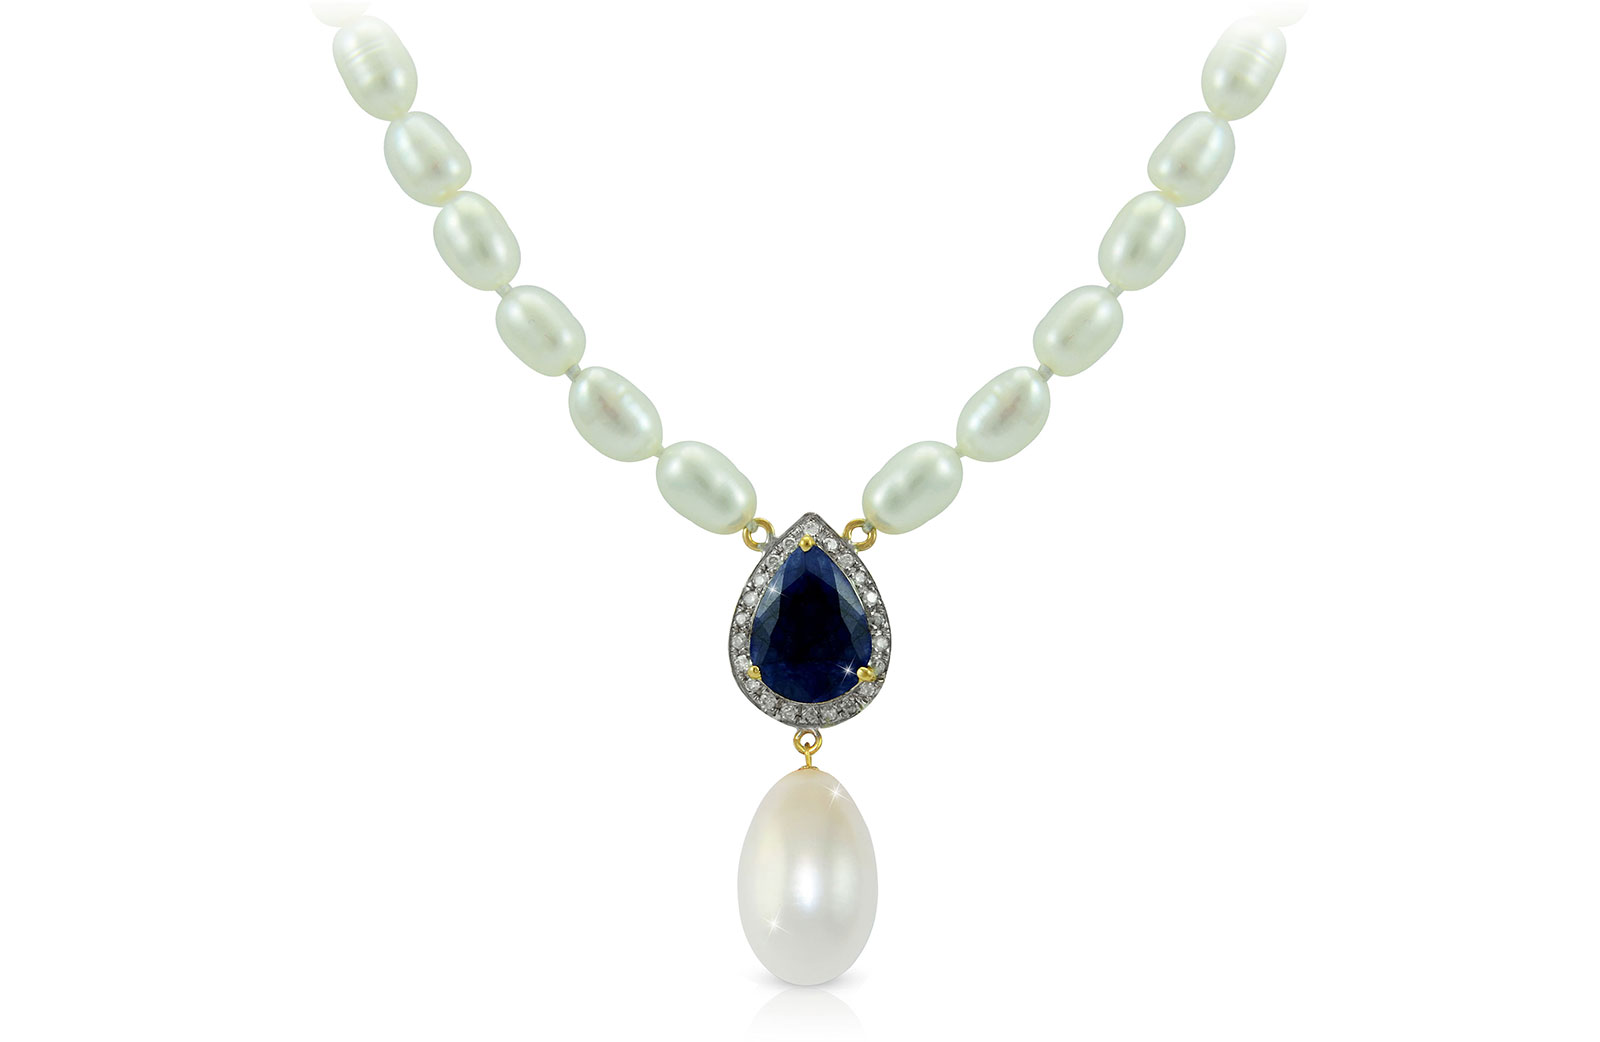 Vera Perla 18K Gold 0.12ct Diamonds, Royal Indian Sapphire and 13mm Pearl Necklace